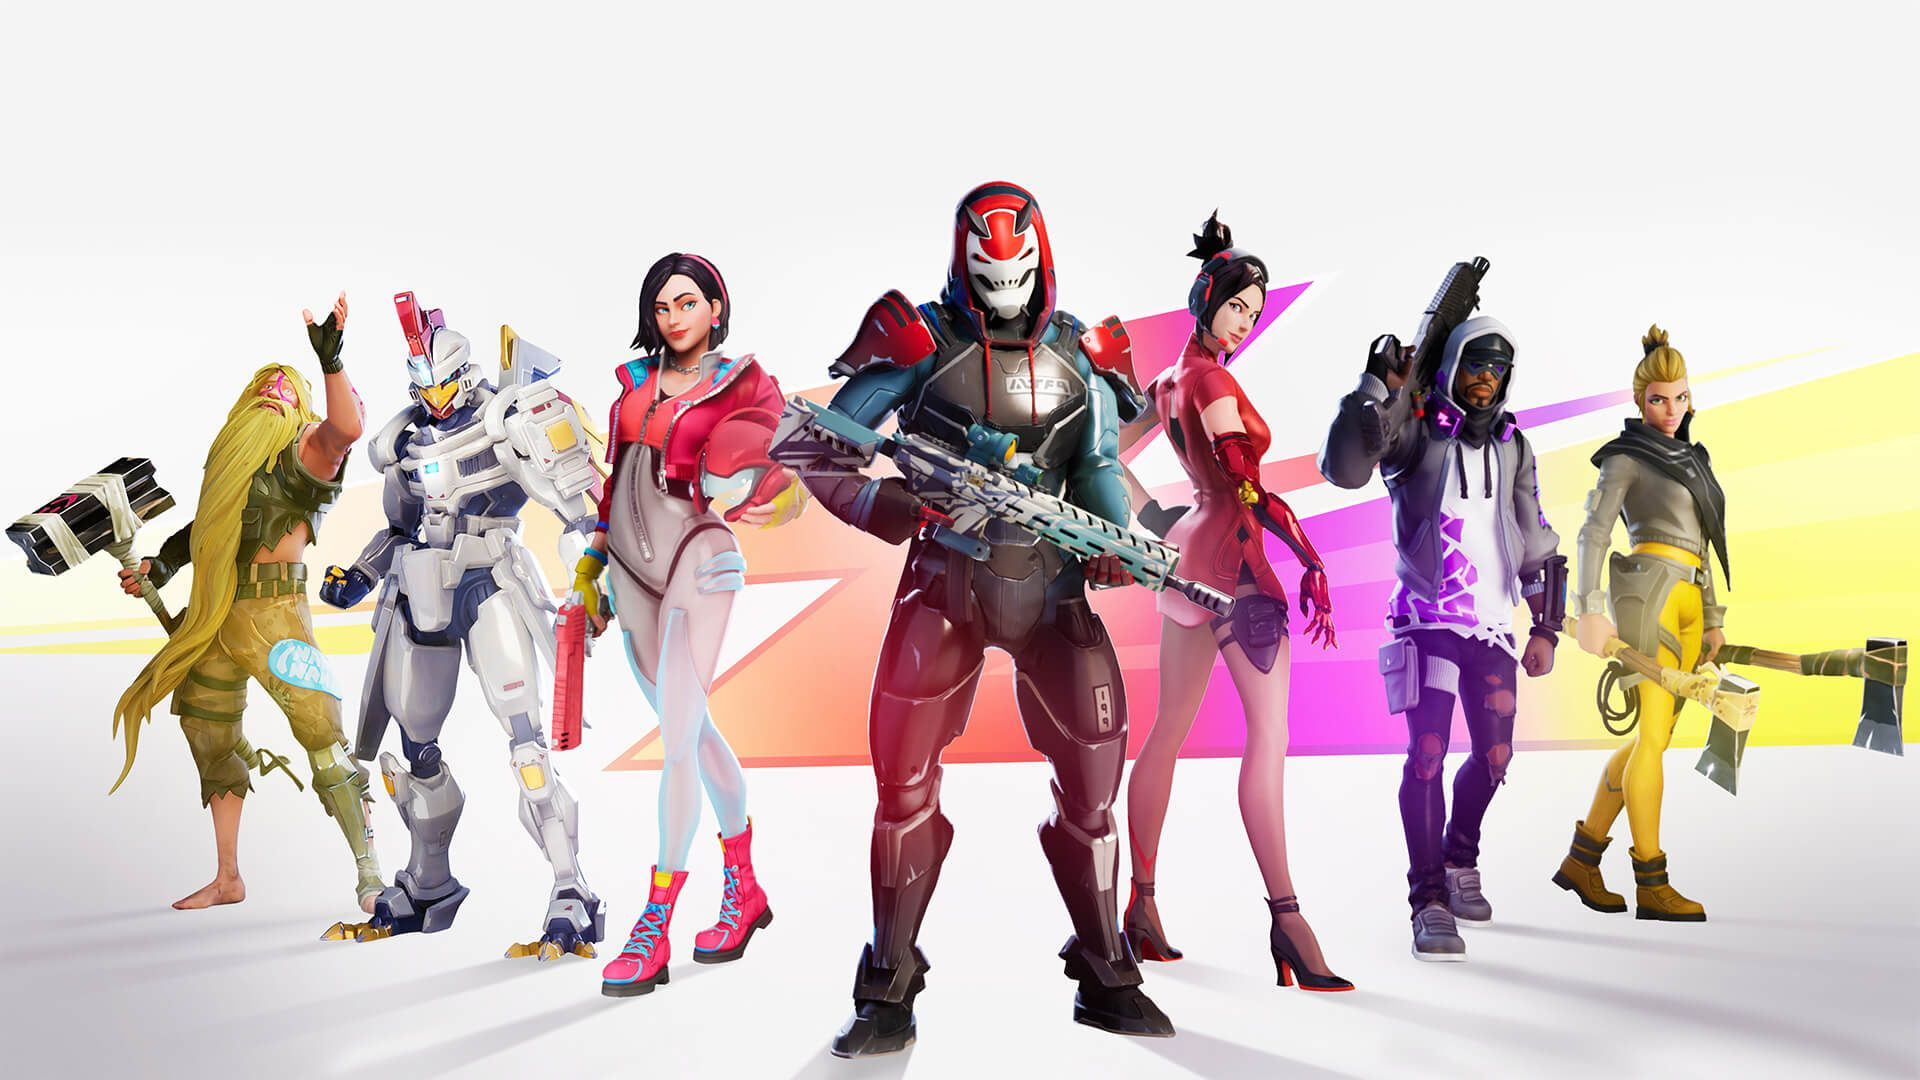 Get The Details On The Futuristic Additions In Fortnite S Season 9 Update Fortnite Epic Games Epic Games Fortnite